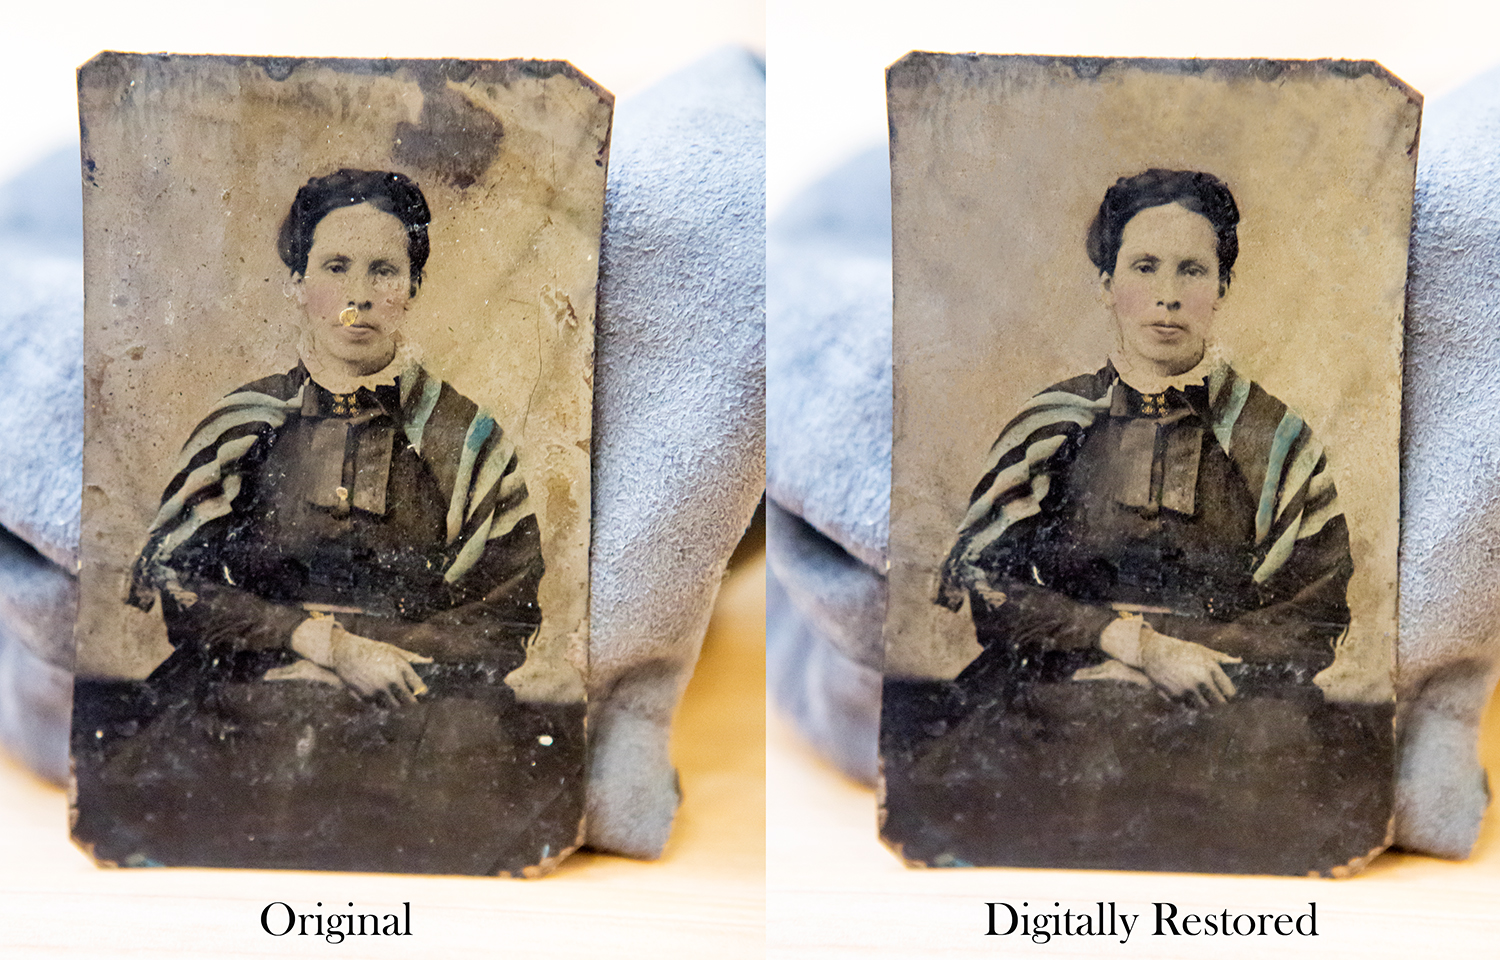 Digital restoration of an historic photograph